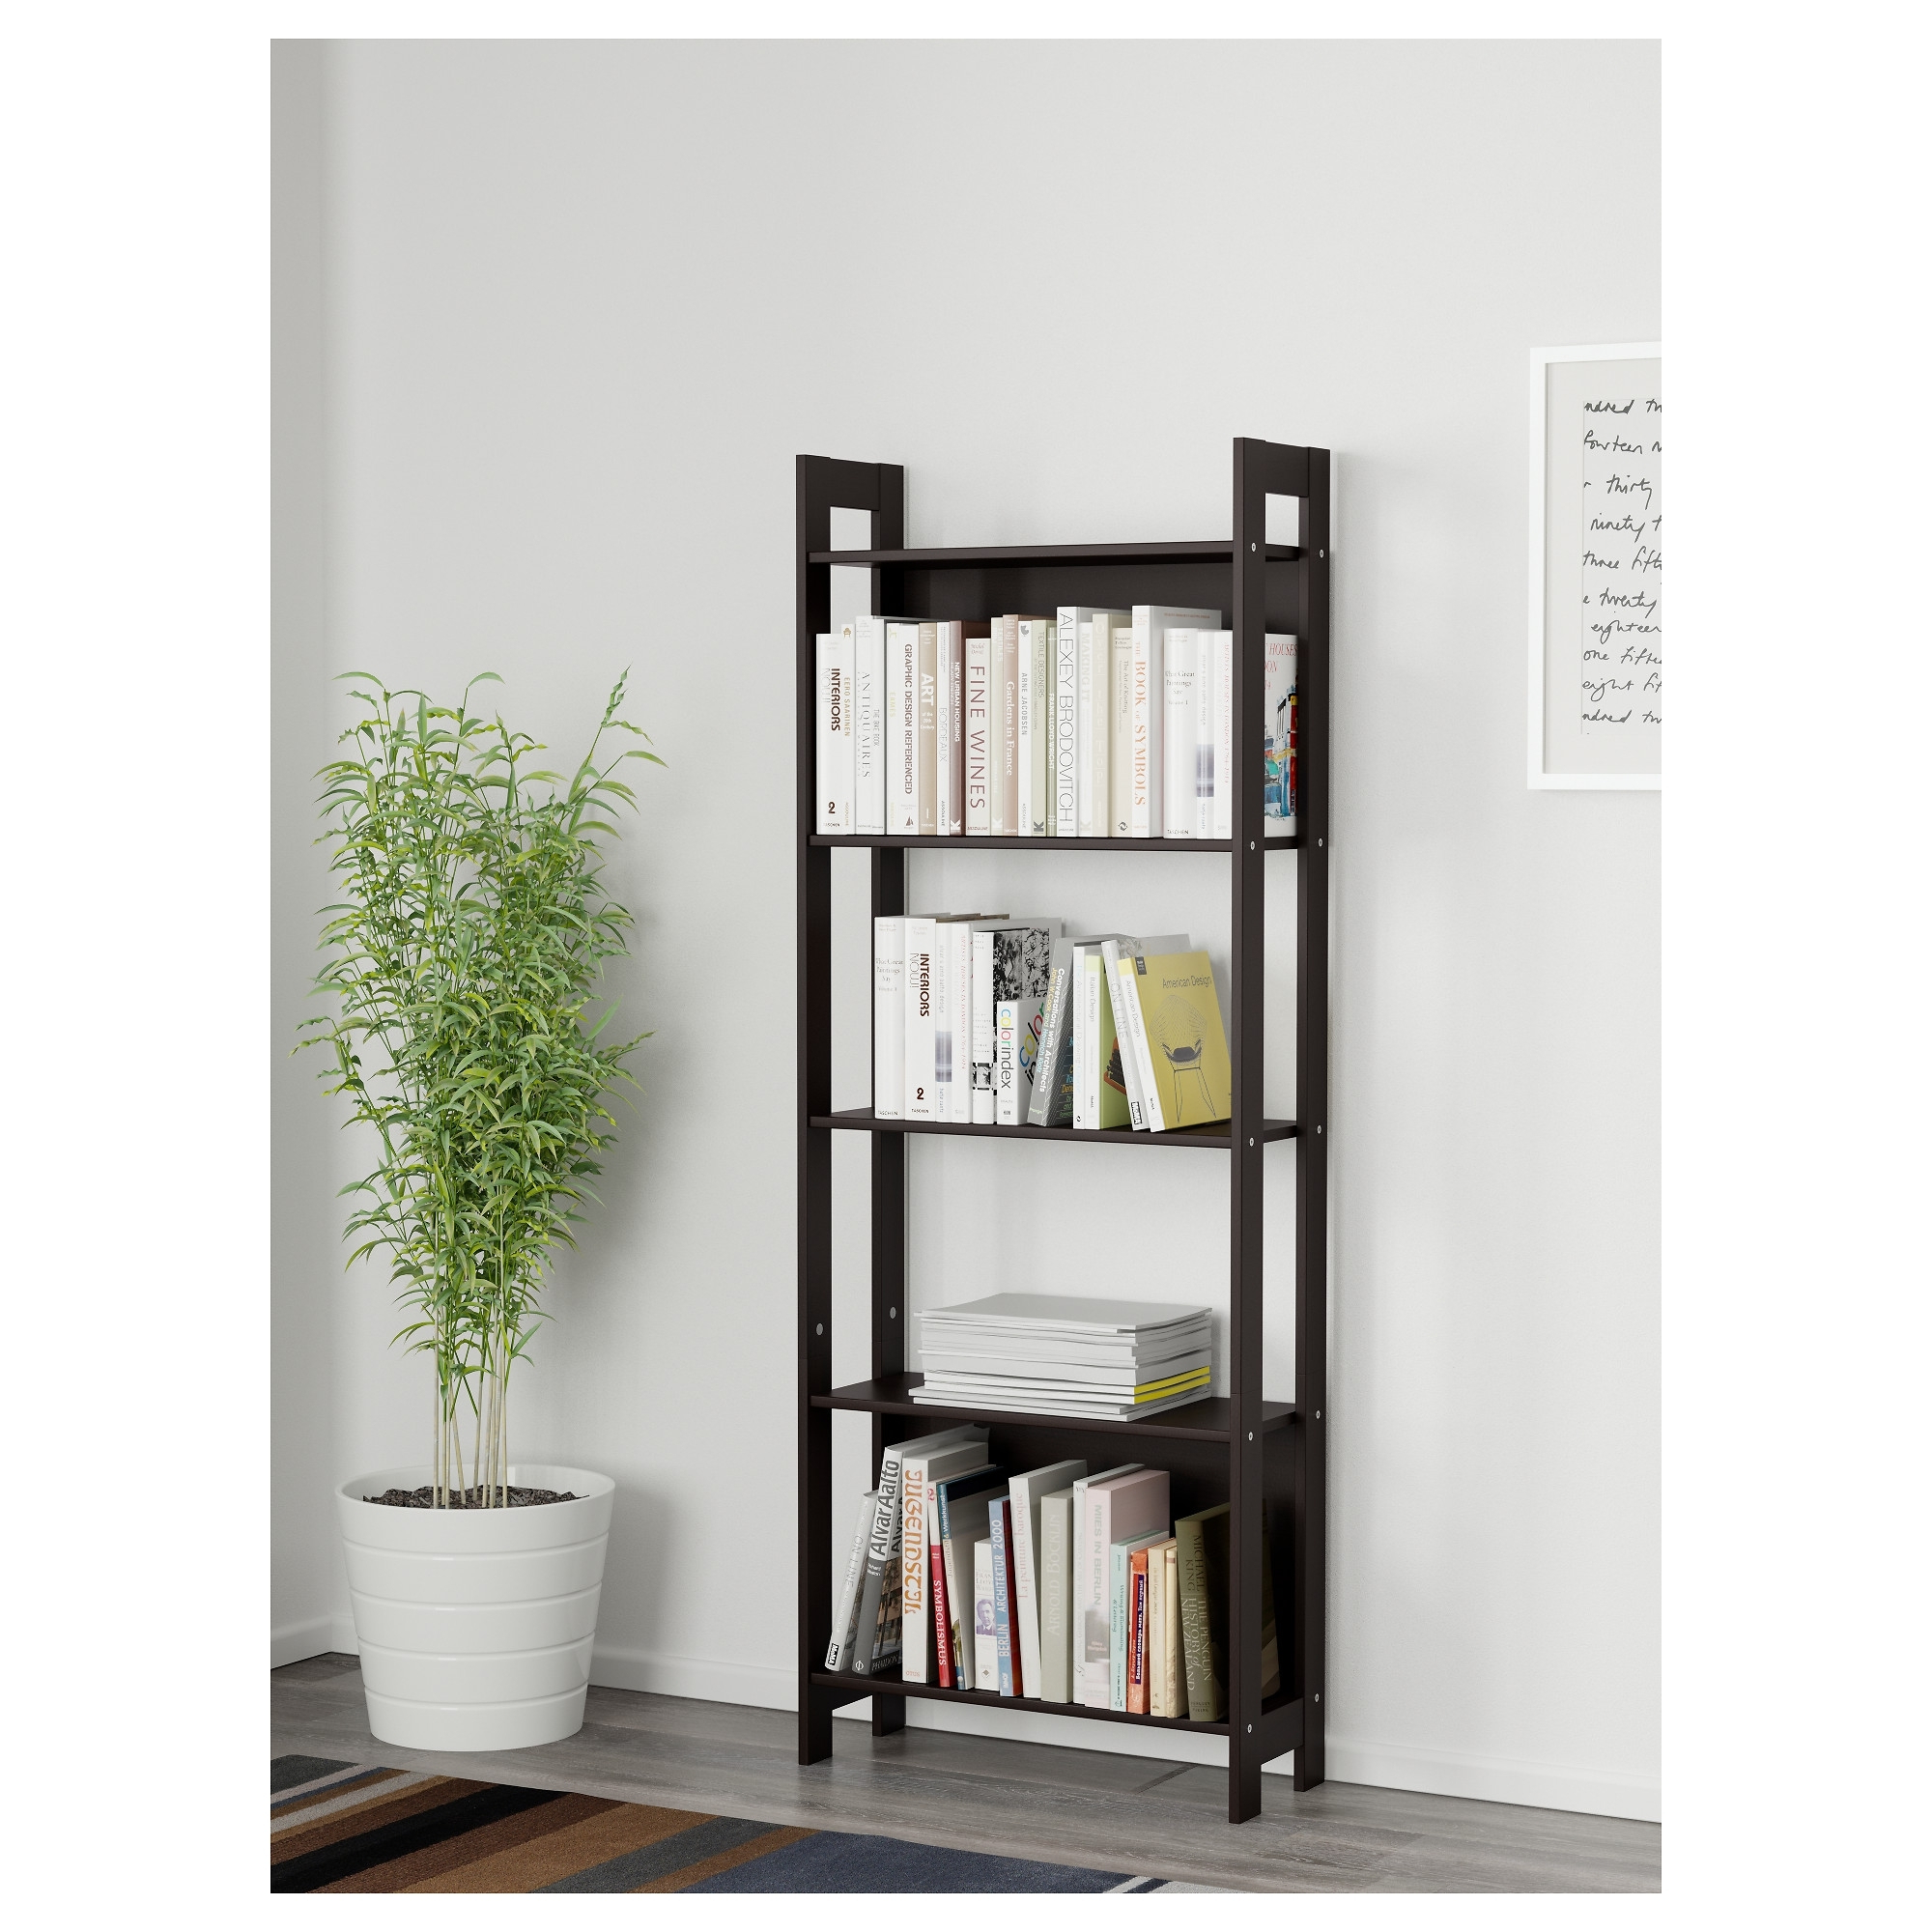 15 Cheap Bookshelves That Won't Fall Apart Intended For Current Johannes Corner Bookcases (Gallery 17 of 20)